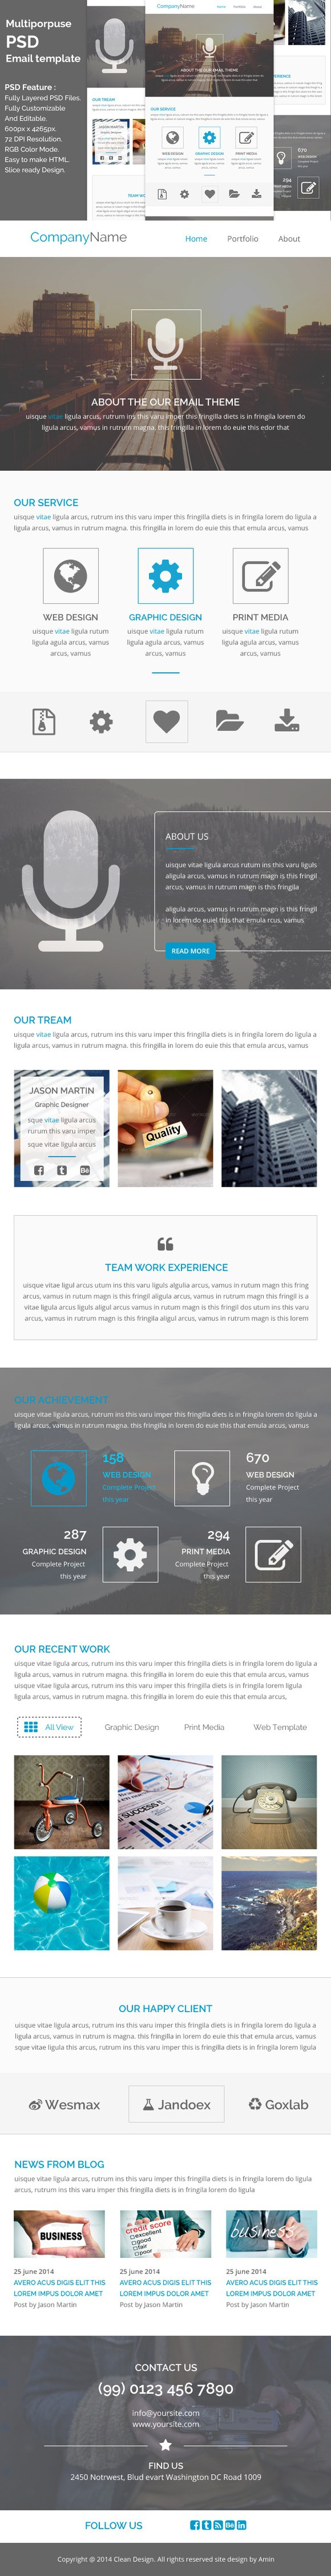 PSD email template e3 | Pinterest | Template, Ui design and Web ...